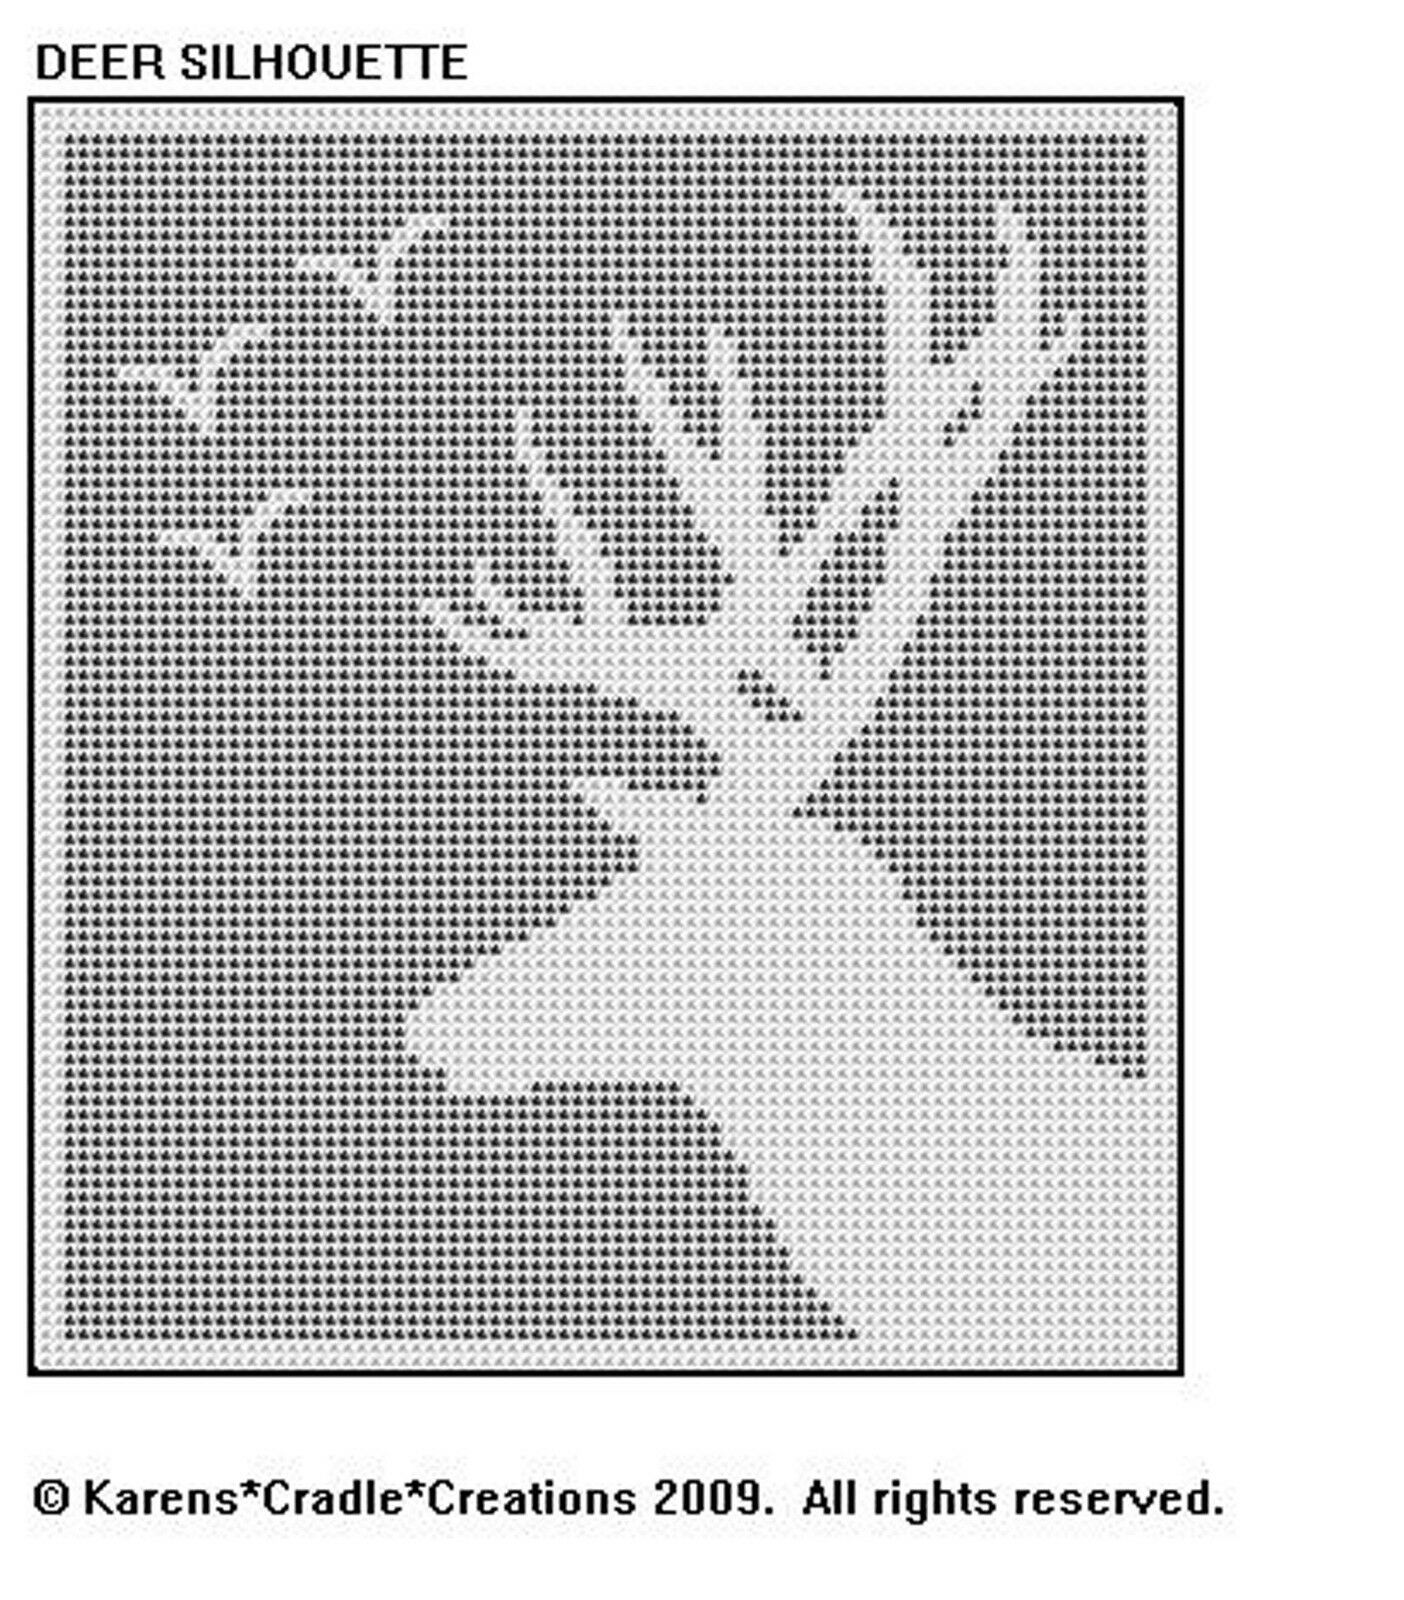 Deer Silhouette Filet Crochet Doily Wall Hanging Pattern 600 Diagram Patterns Easy Ideas 1 Of See More